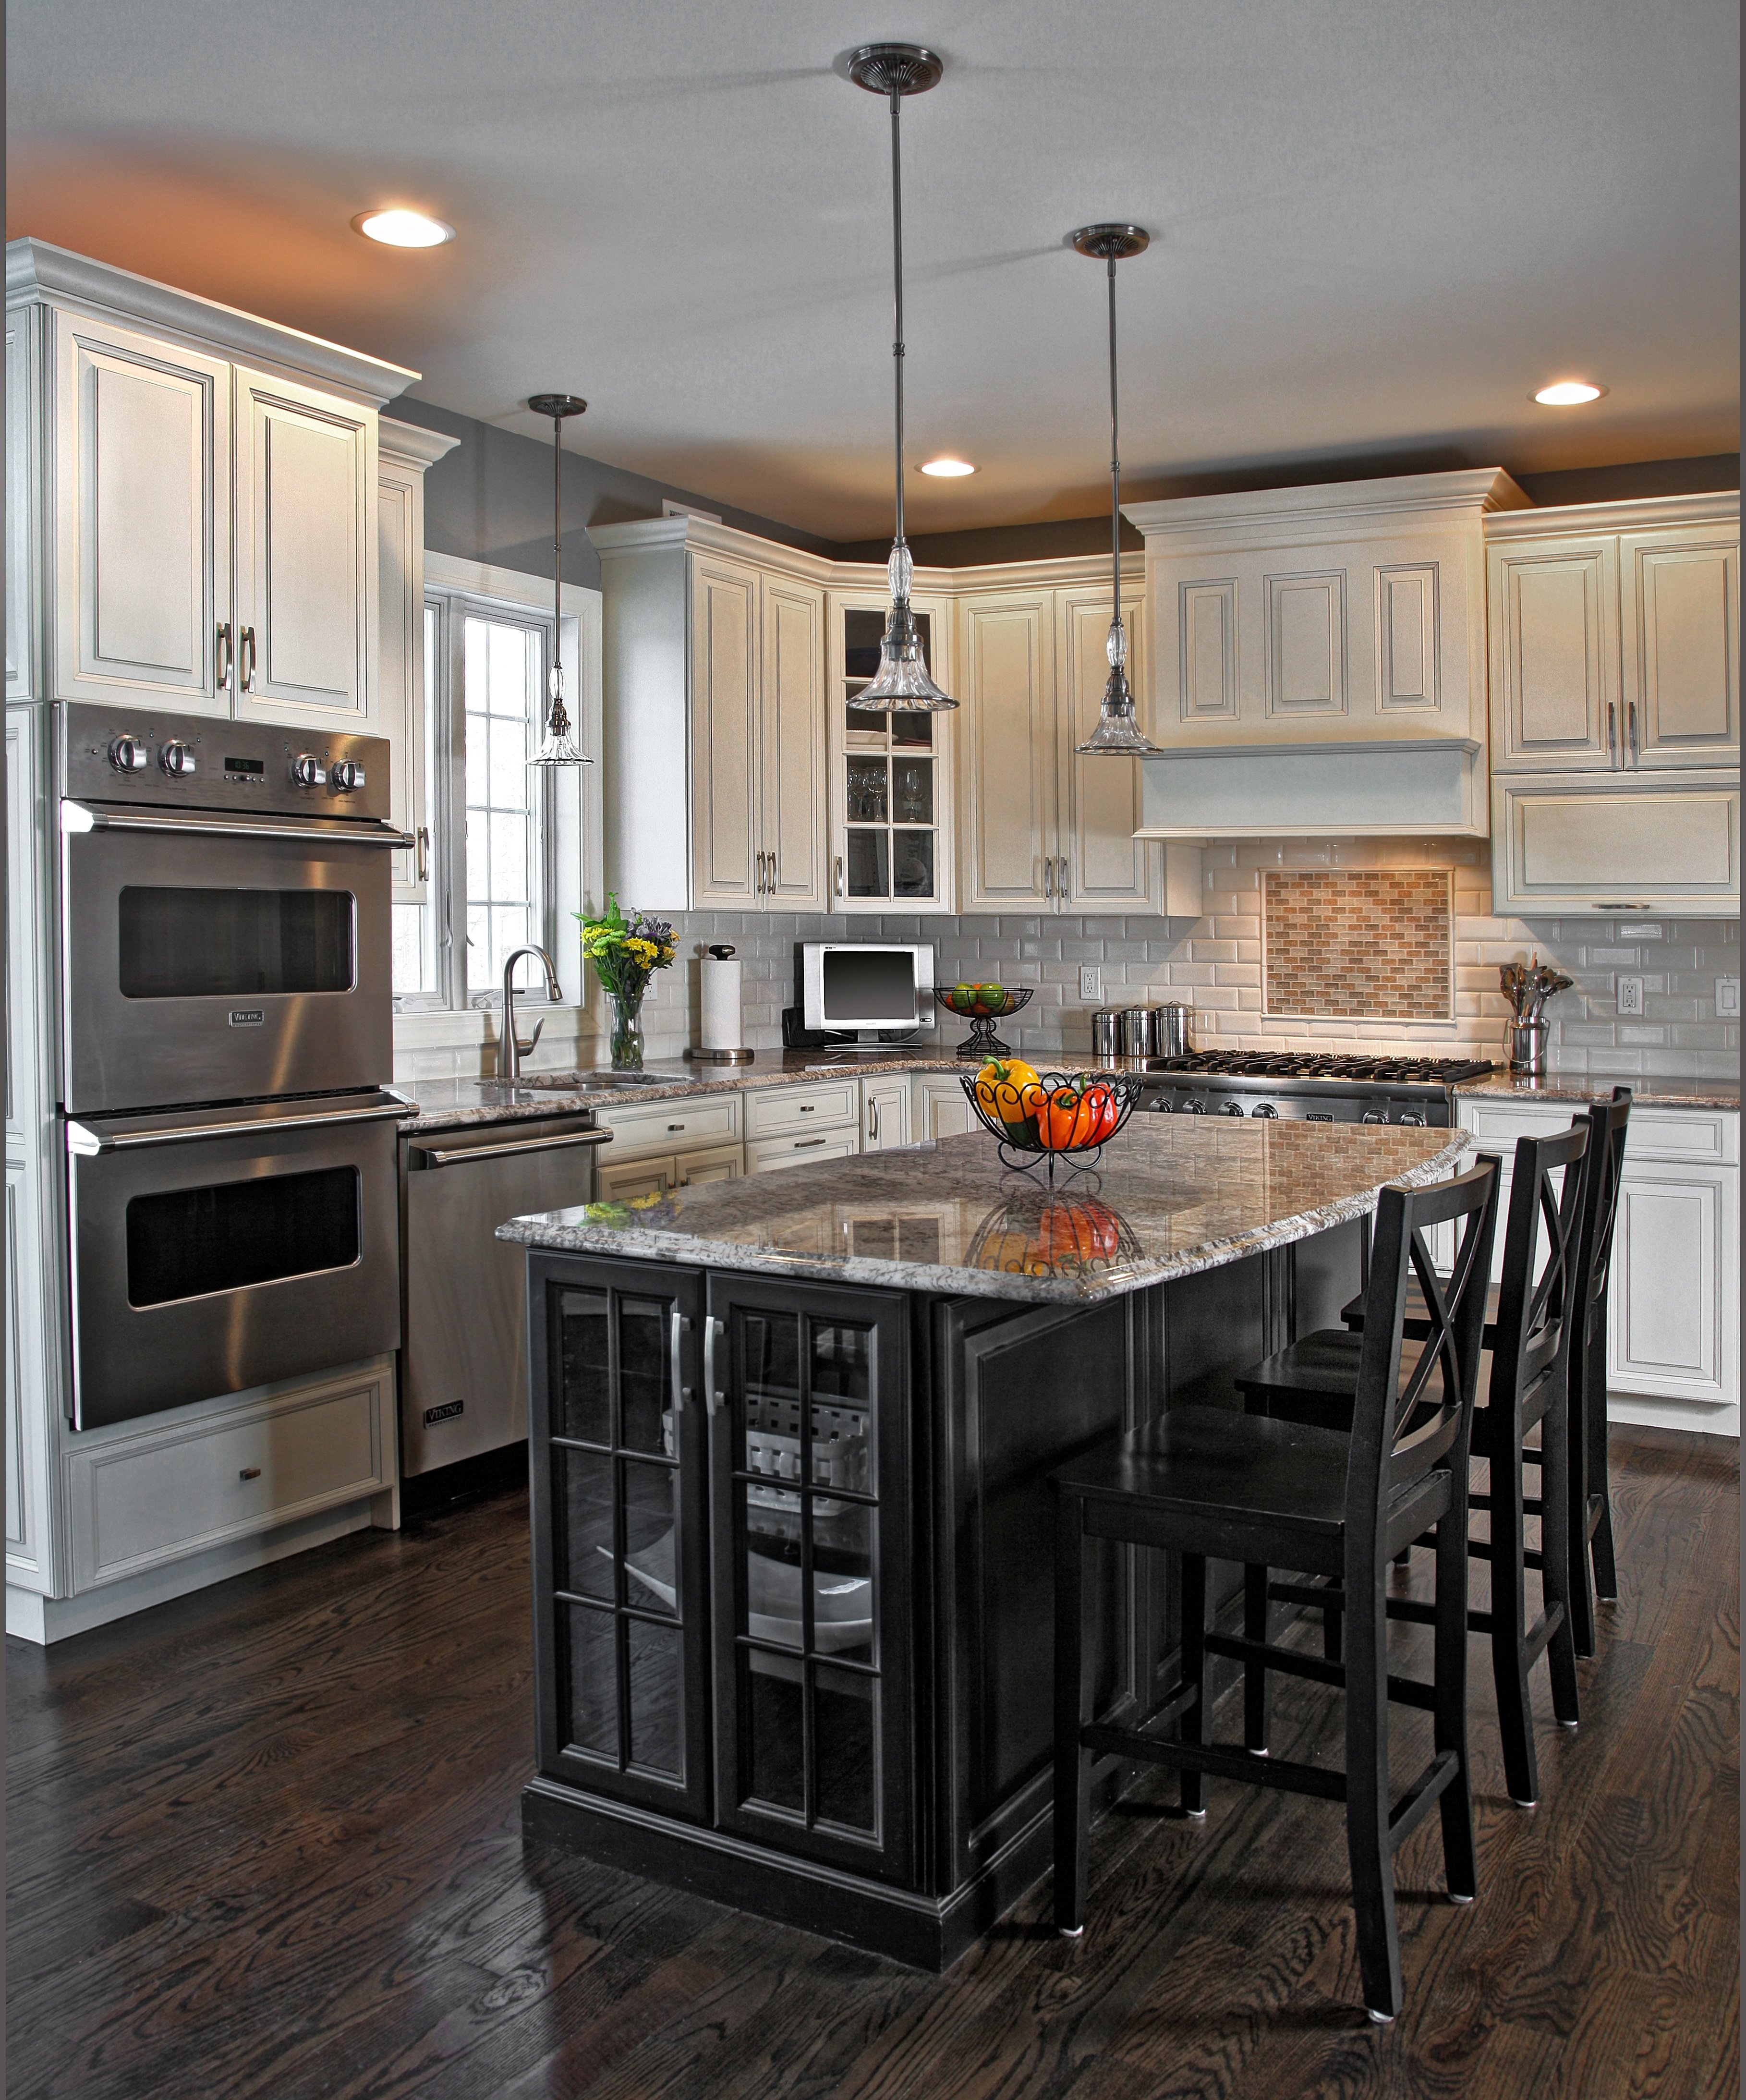 Small Kitchens With Black Cabinets: Would A Small Kitchen Look Good With Black Cabinets?